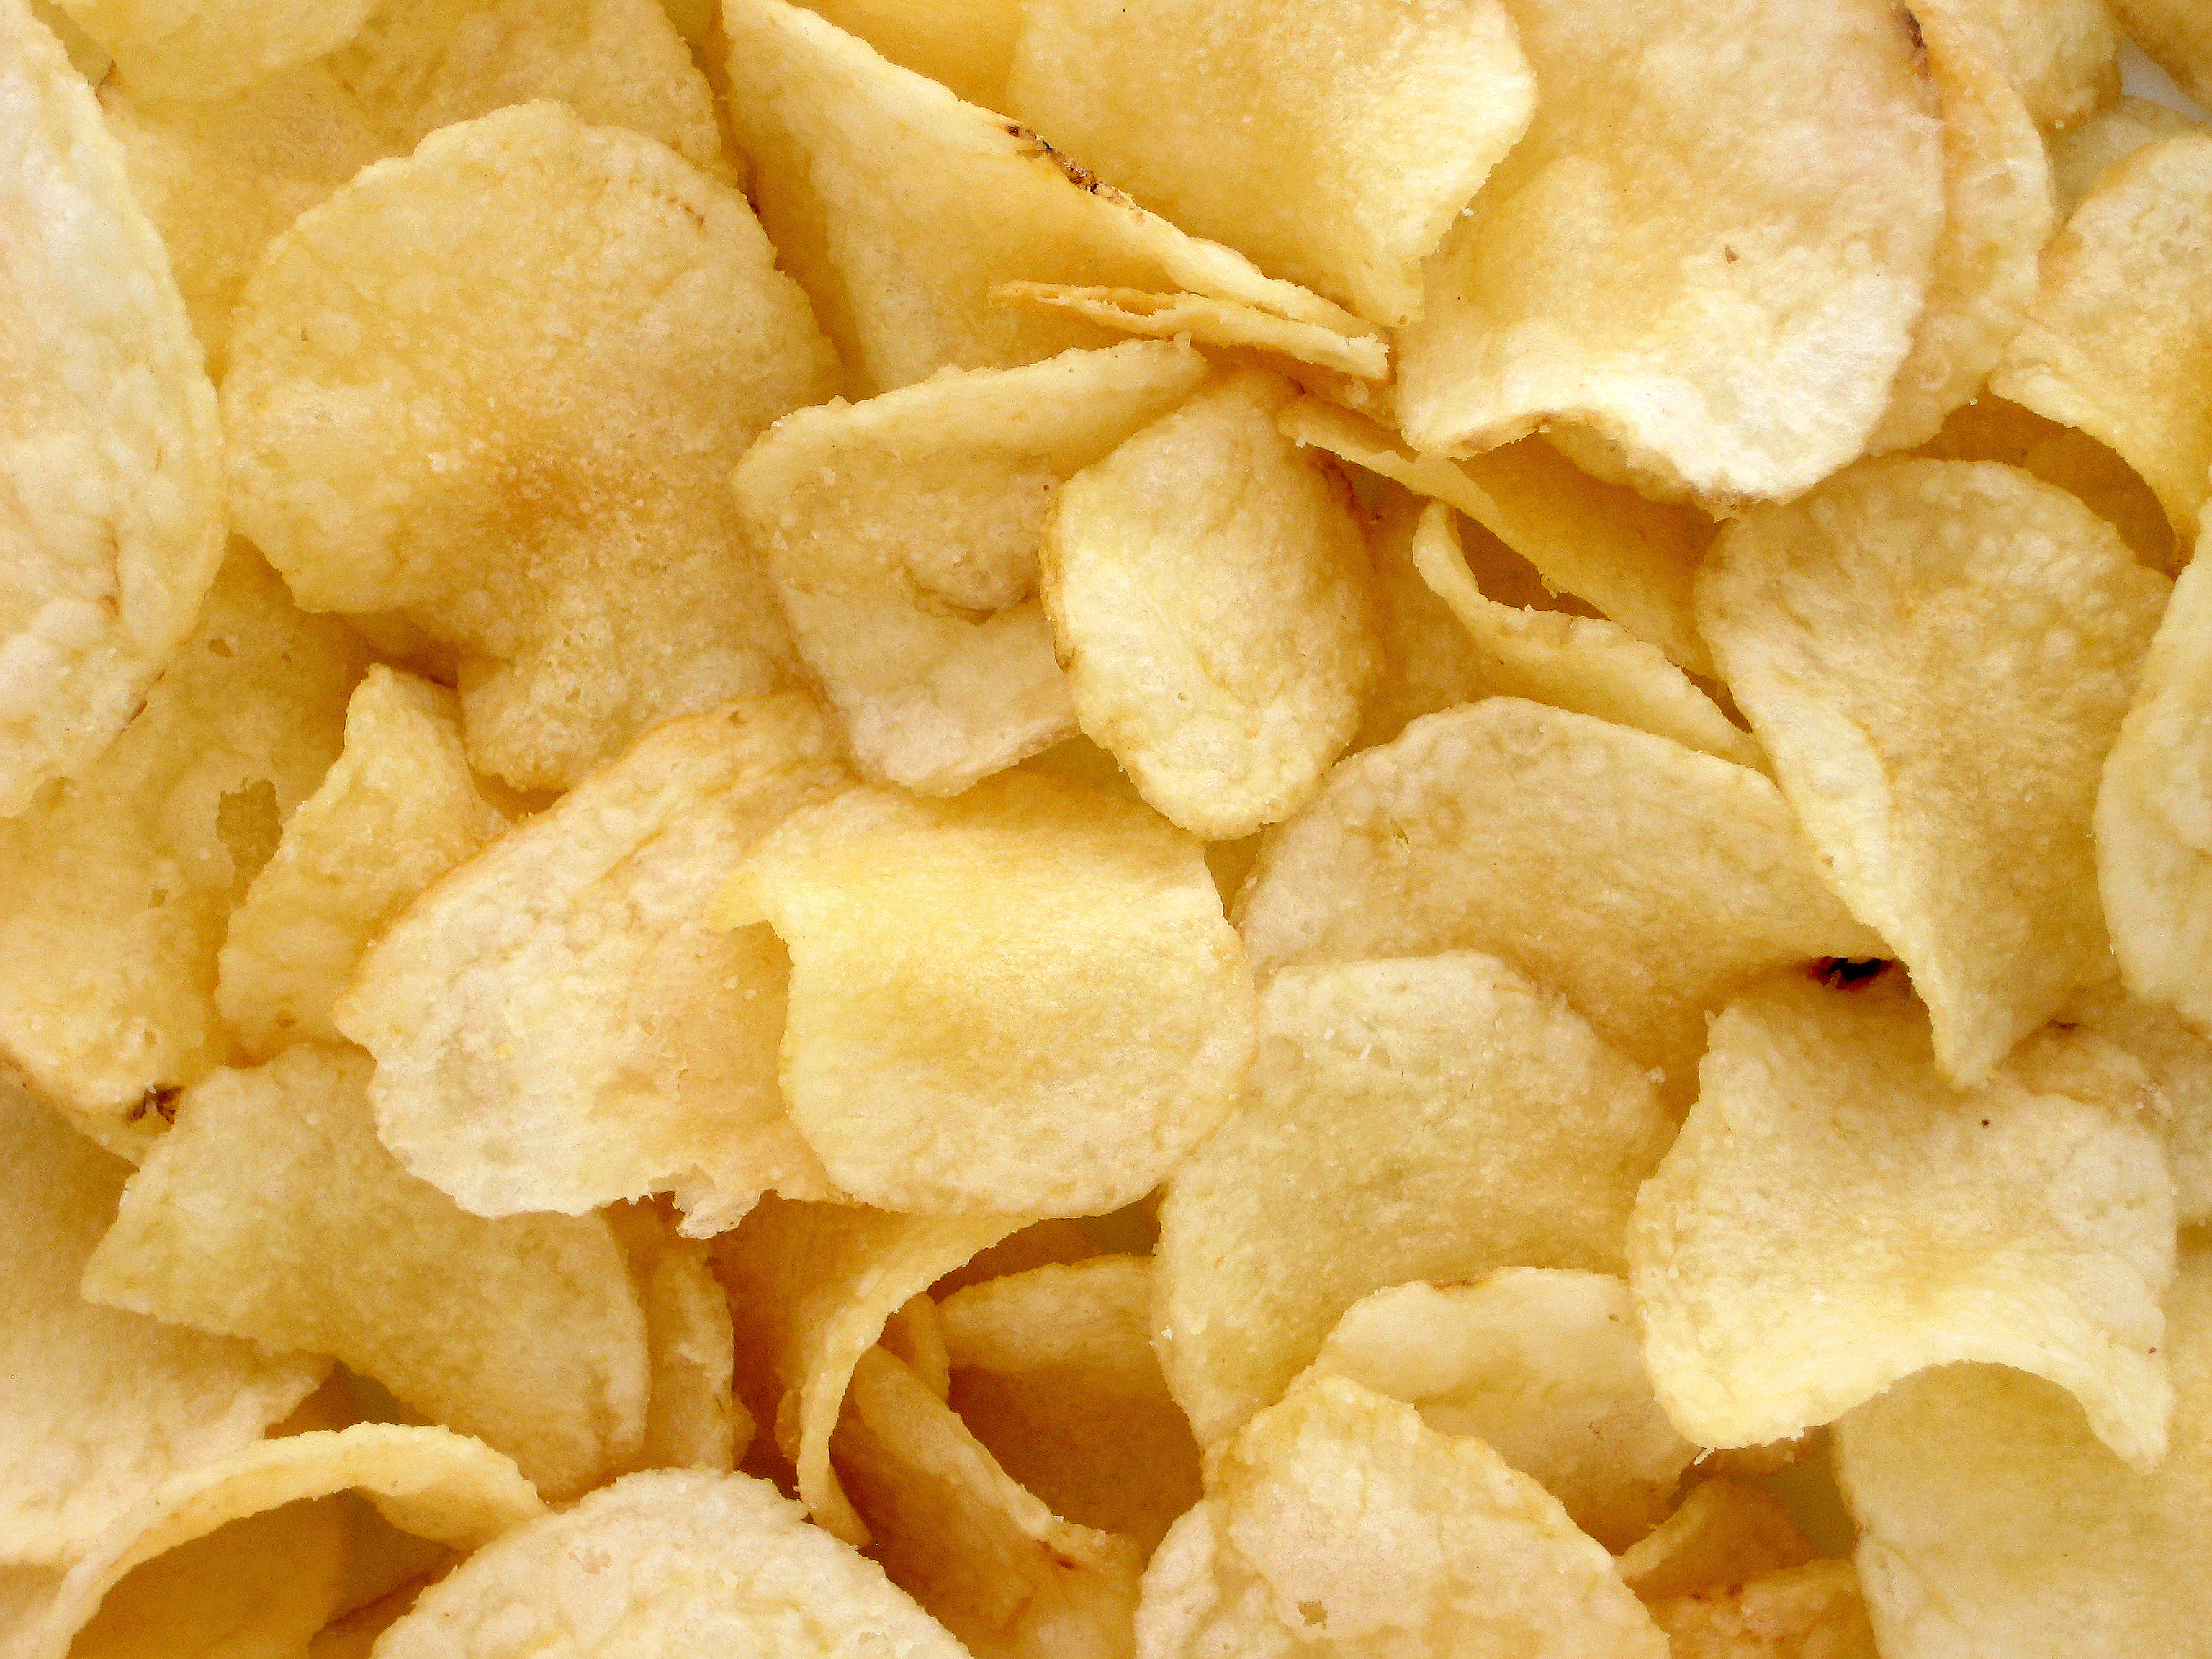 File:Potato-Chips.jpg - Wikipedia